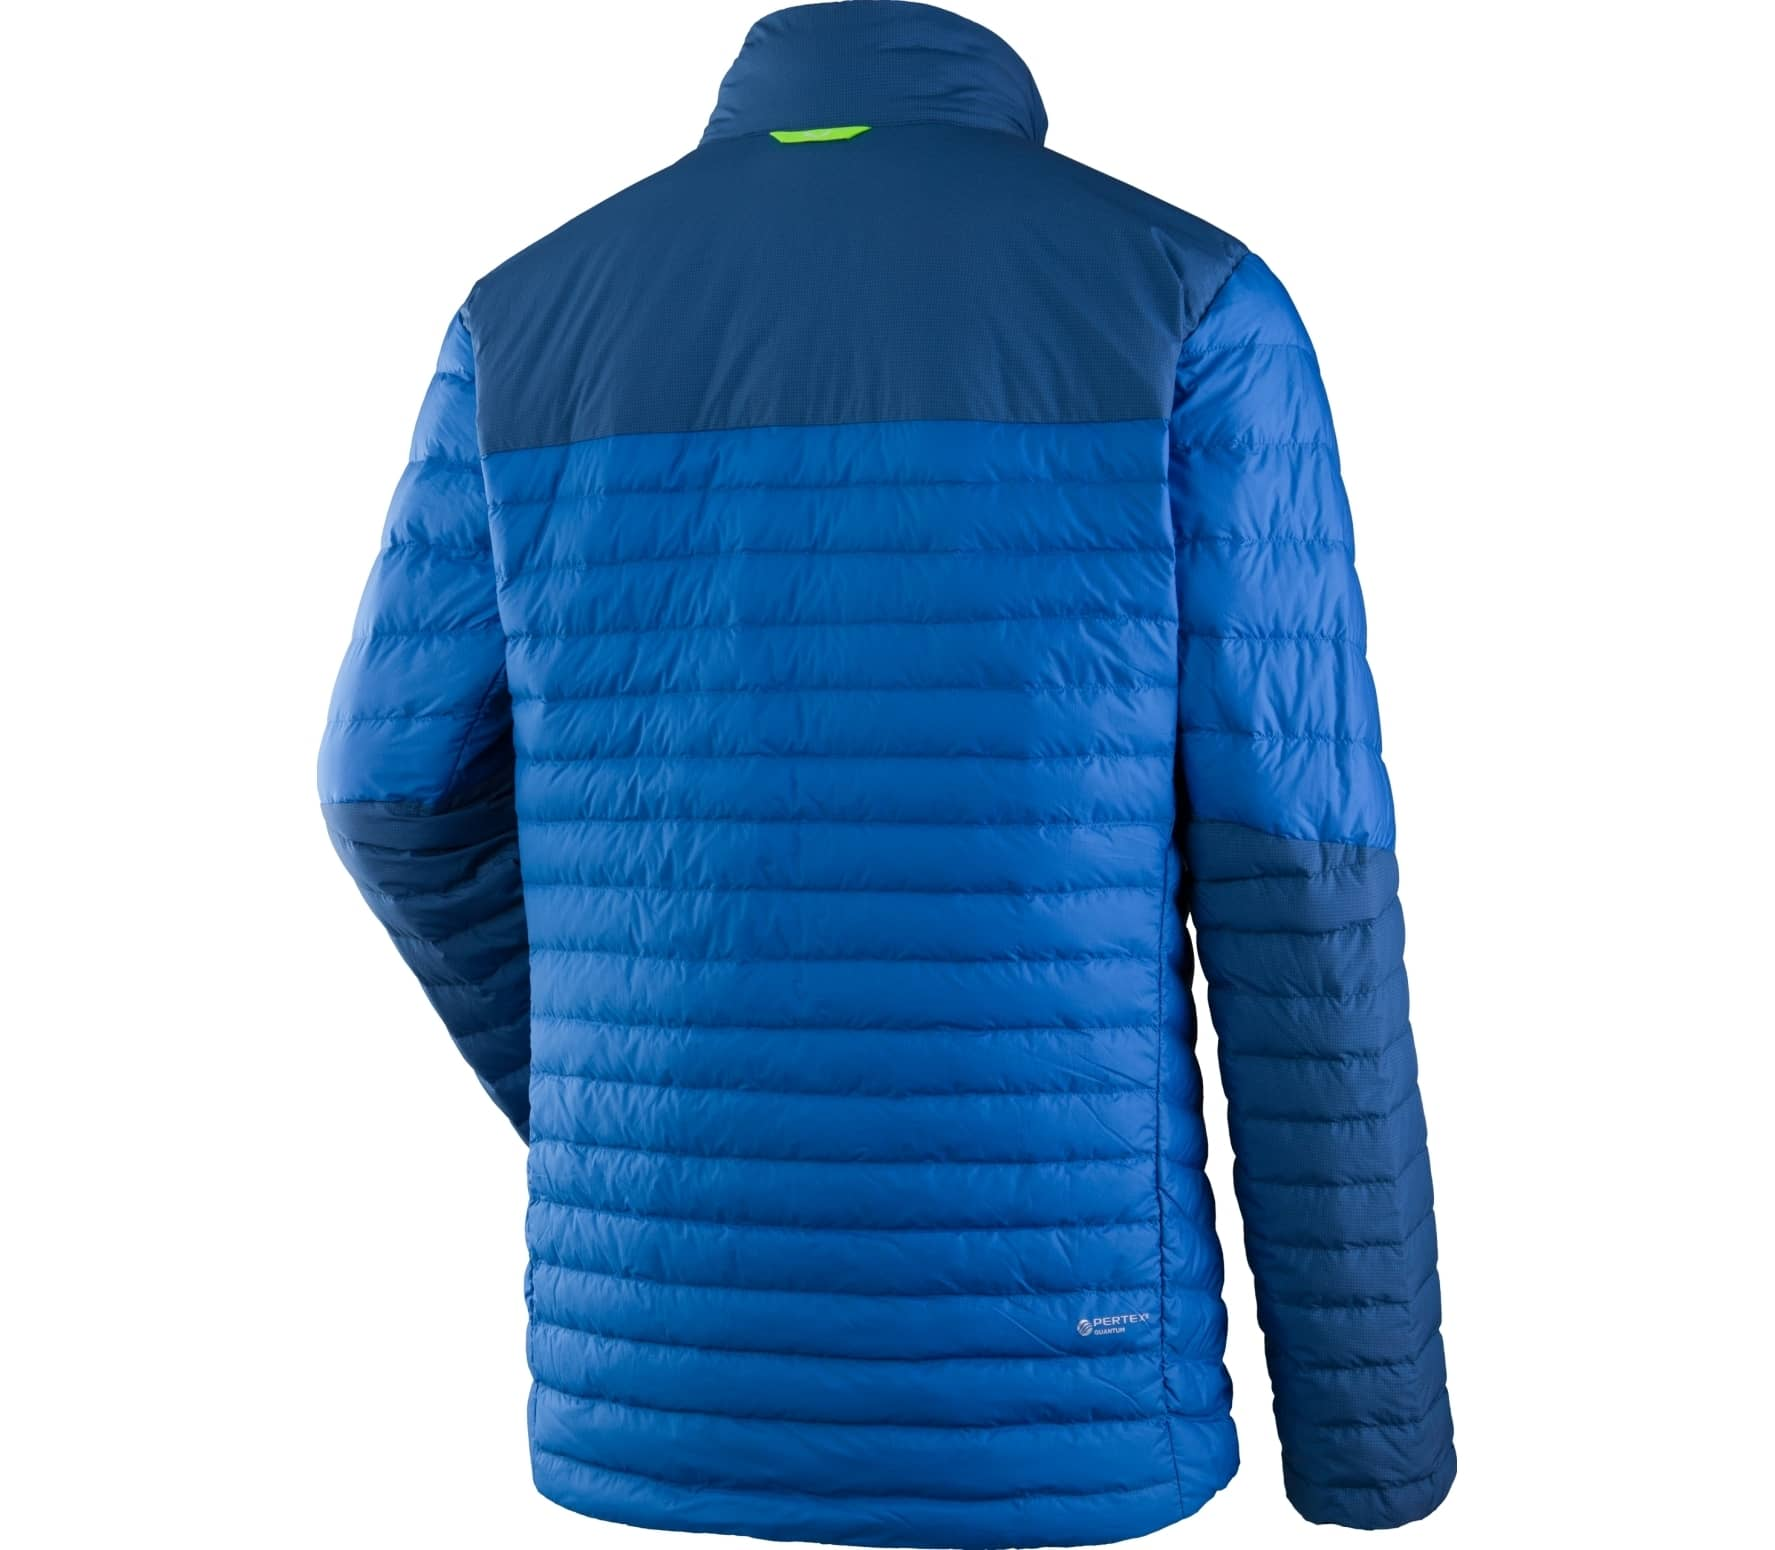 buy online e8b03 50ec6 Salewa - Ortles Light 2 Uomo piumino (blu)